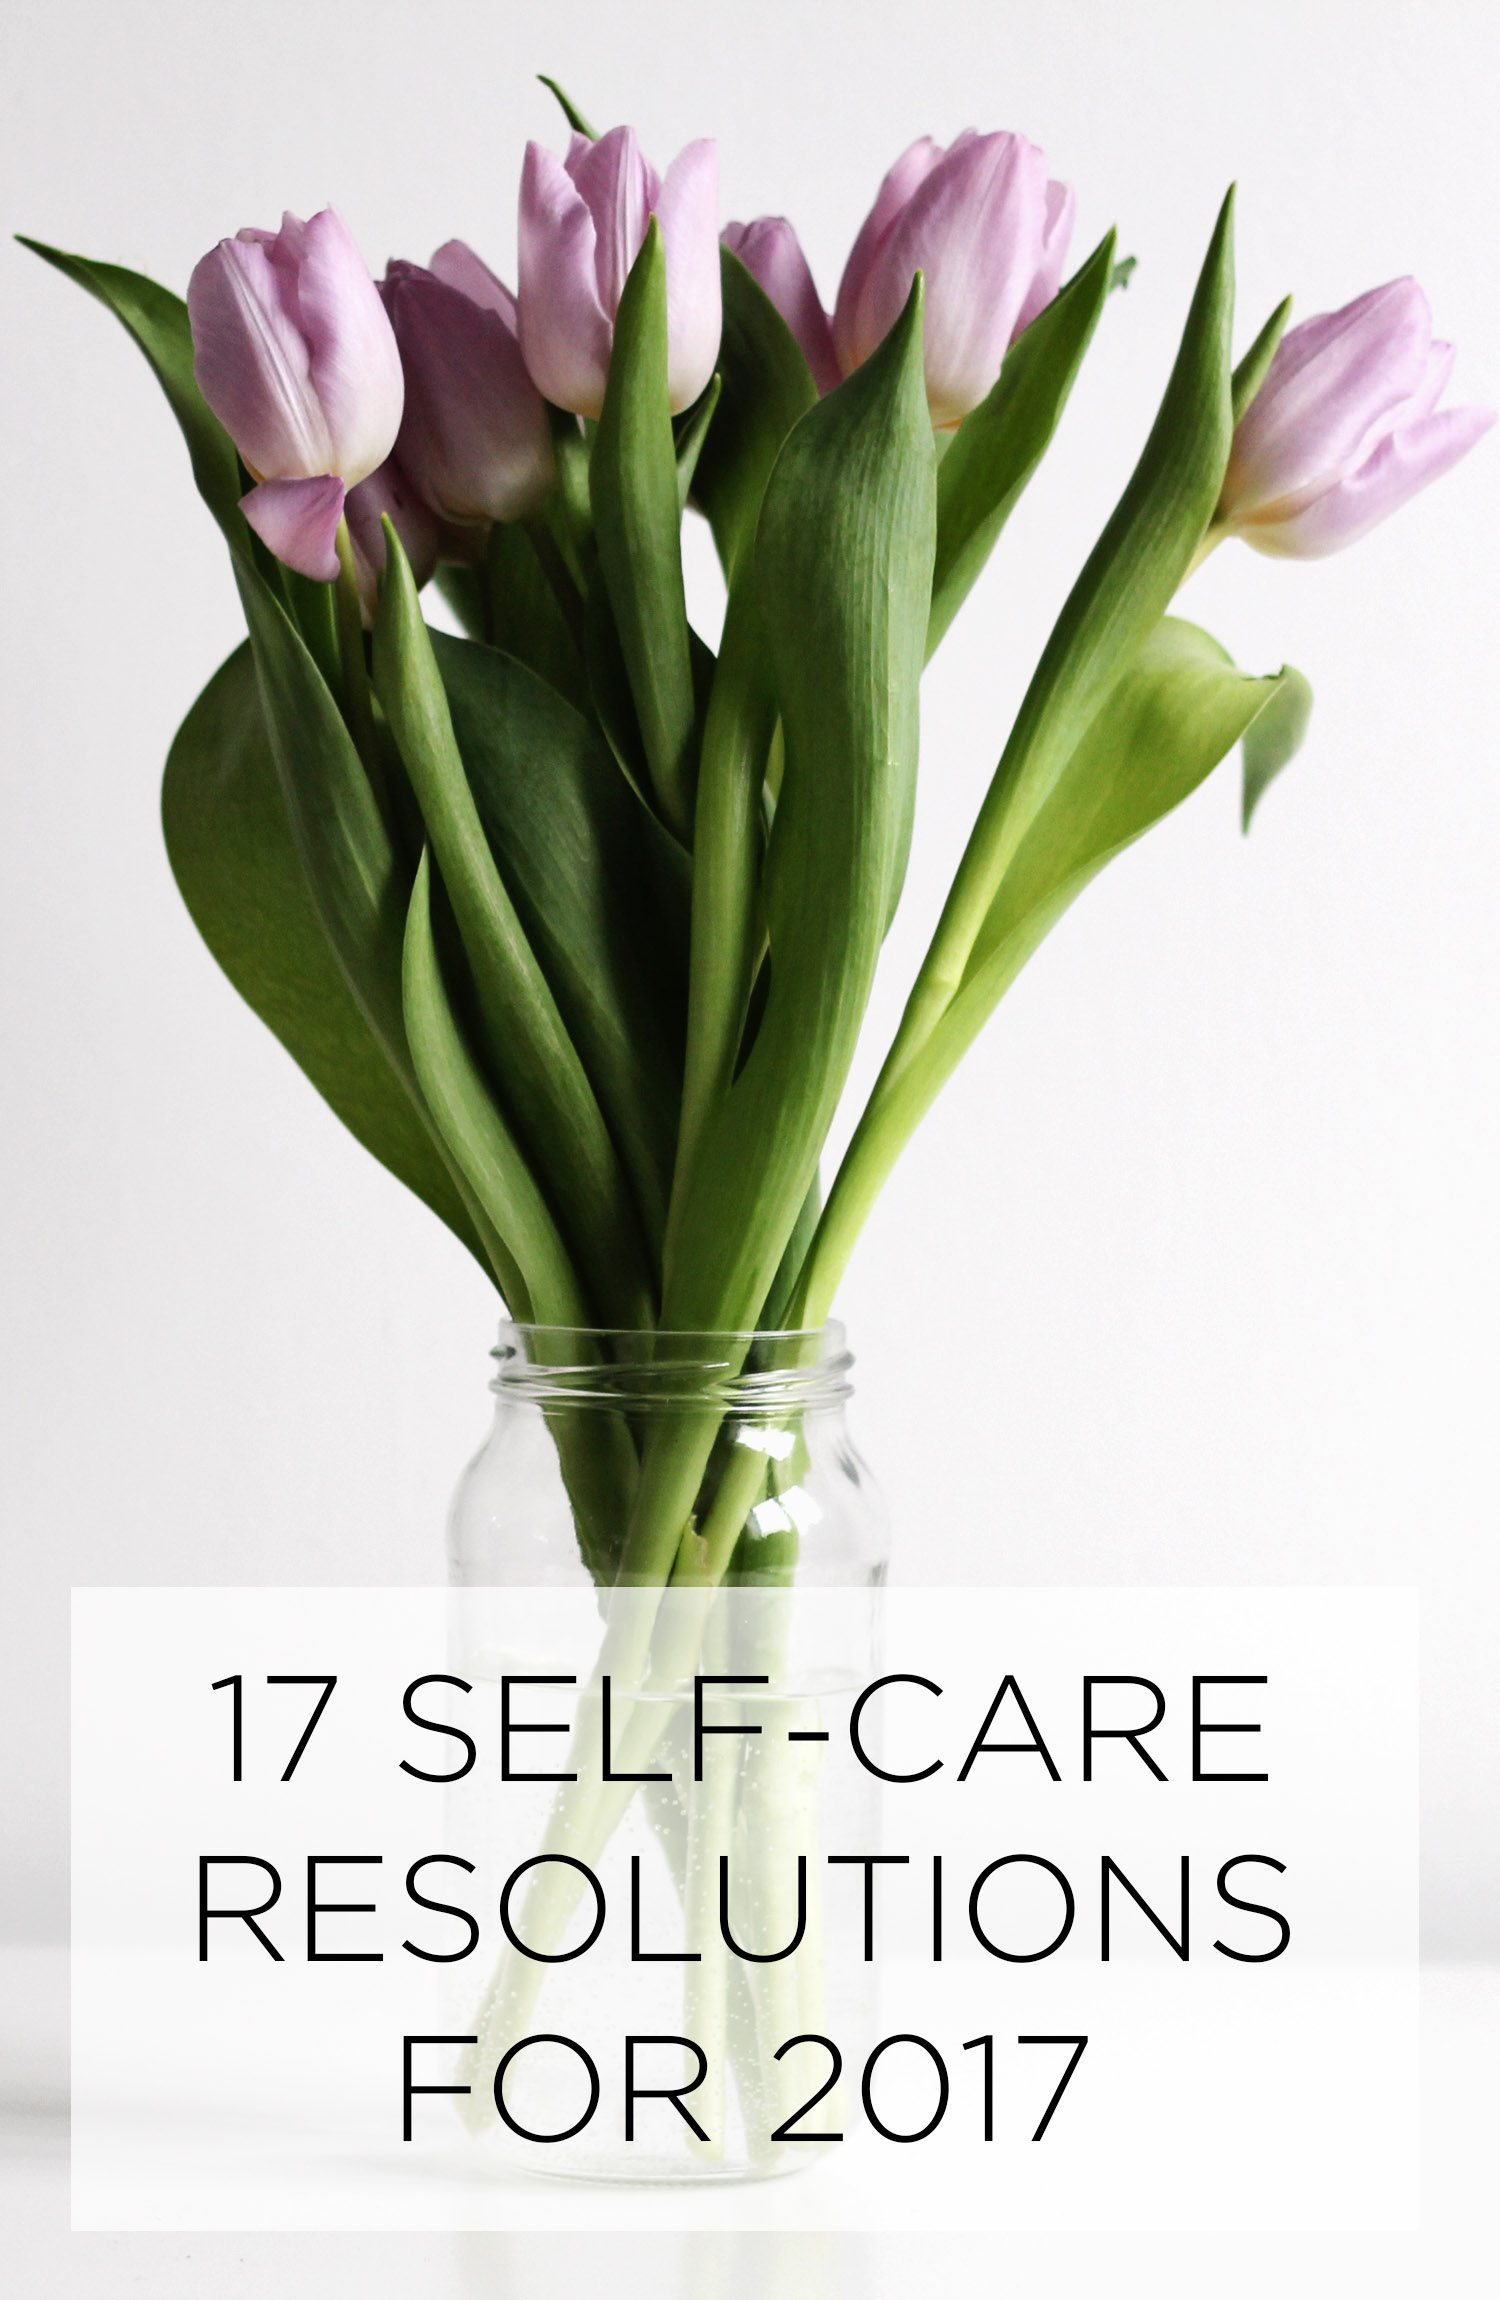 17-self-care-resolutions-for-2017